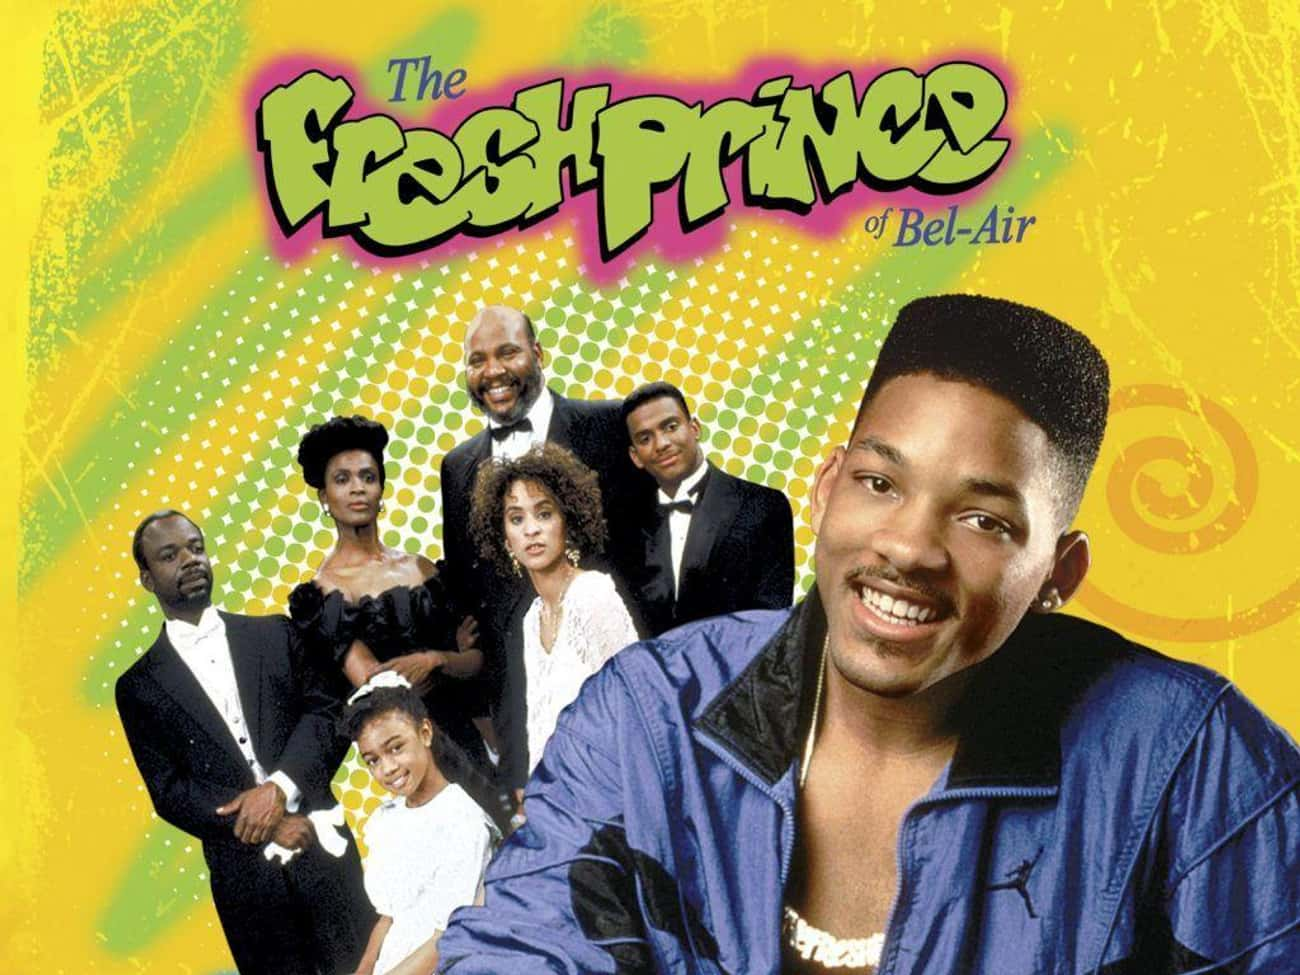 The Fresh Prince of Bel-Air - THEN